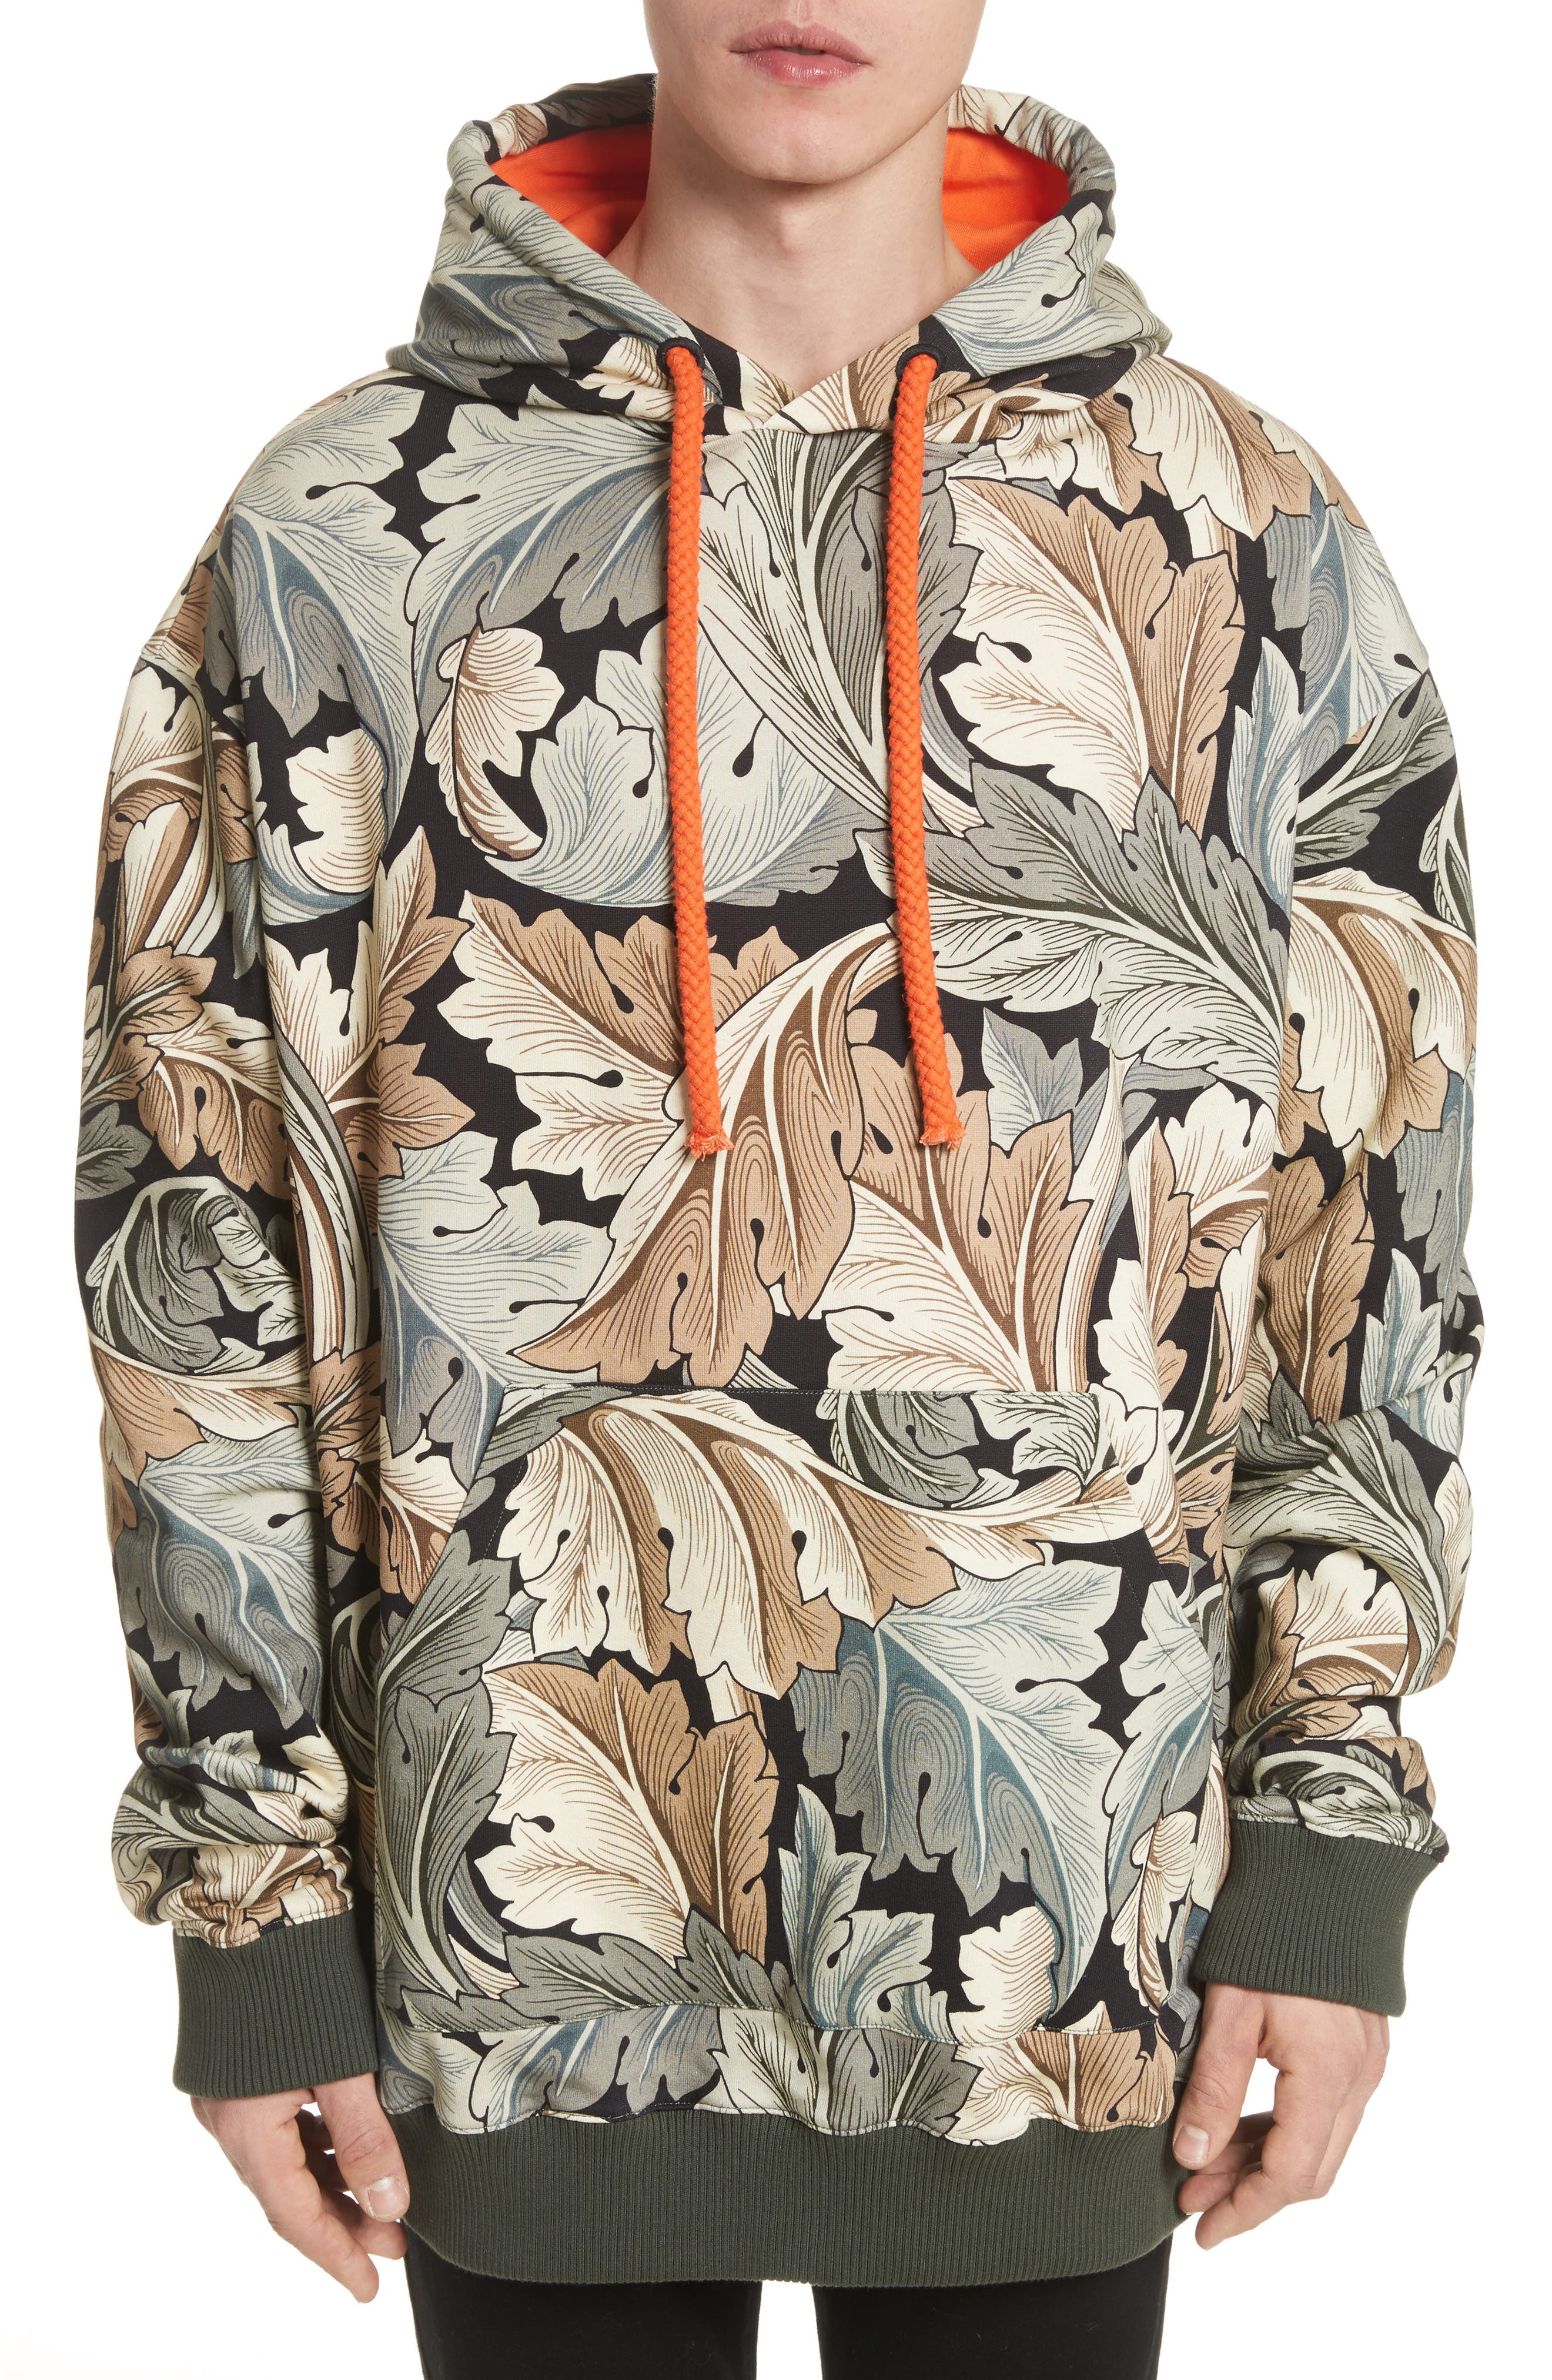 William Morris Print Oversize Hoodie,                             Main thumbnail 1, color,                             100